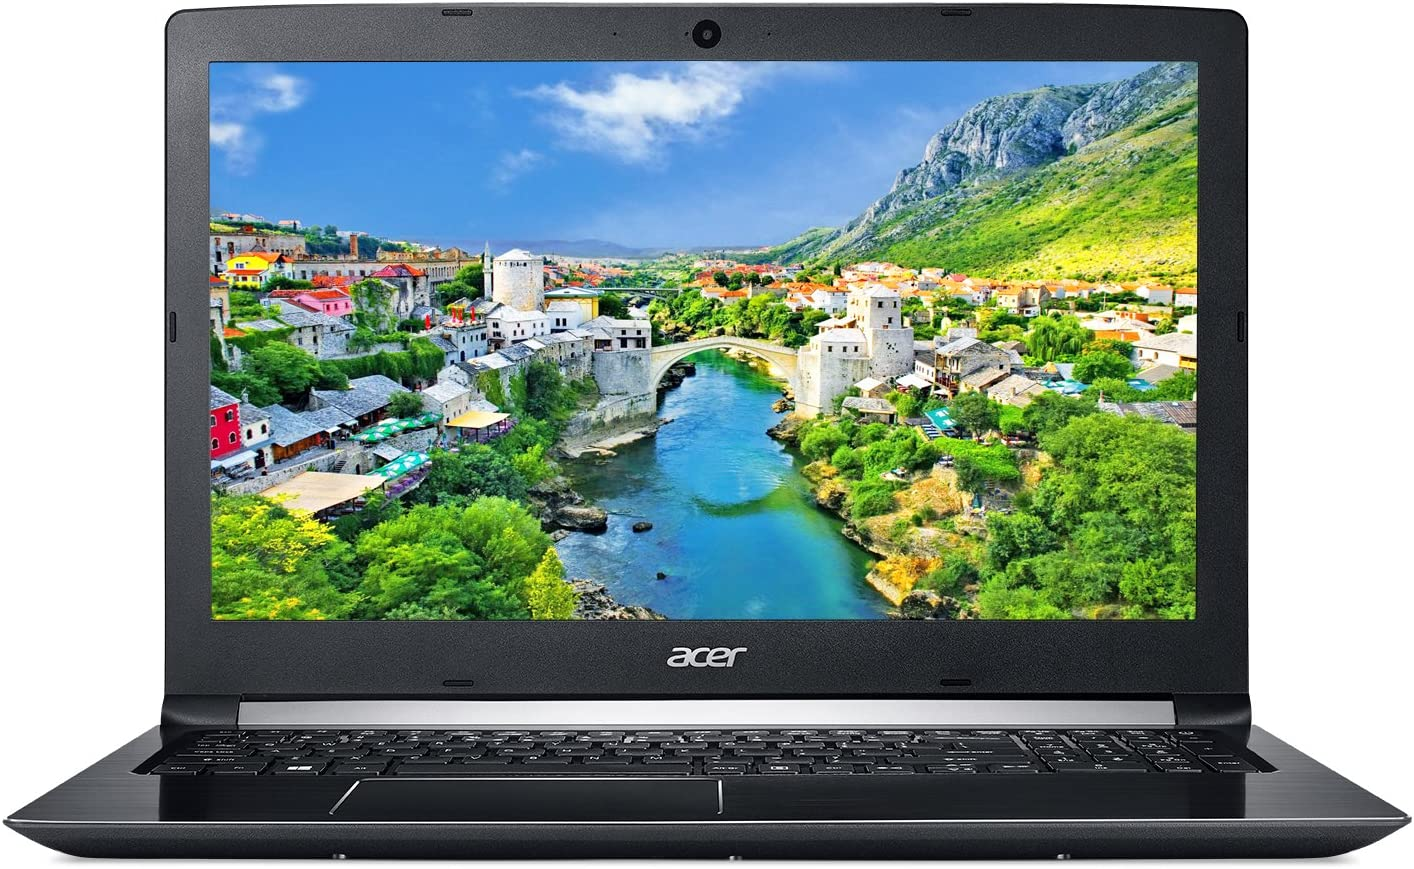 "Acer Aspire 5 15.6"" FHD Intel i3-7100U 2.4 GHz 8GB DDR4 1TB HDD Webcam Bluetooth Windows 10"